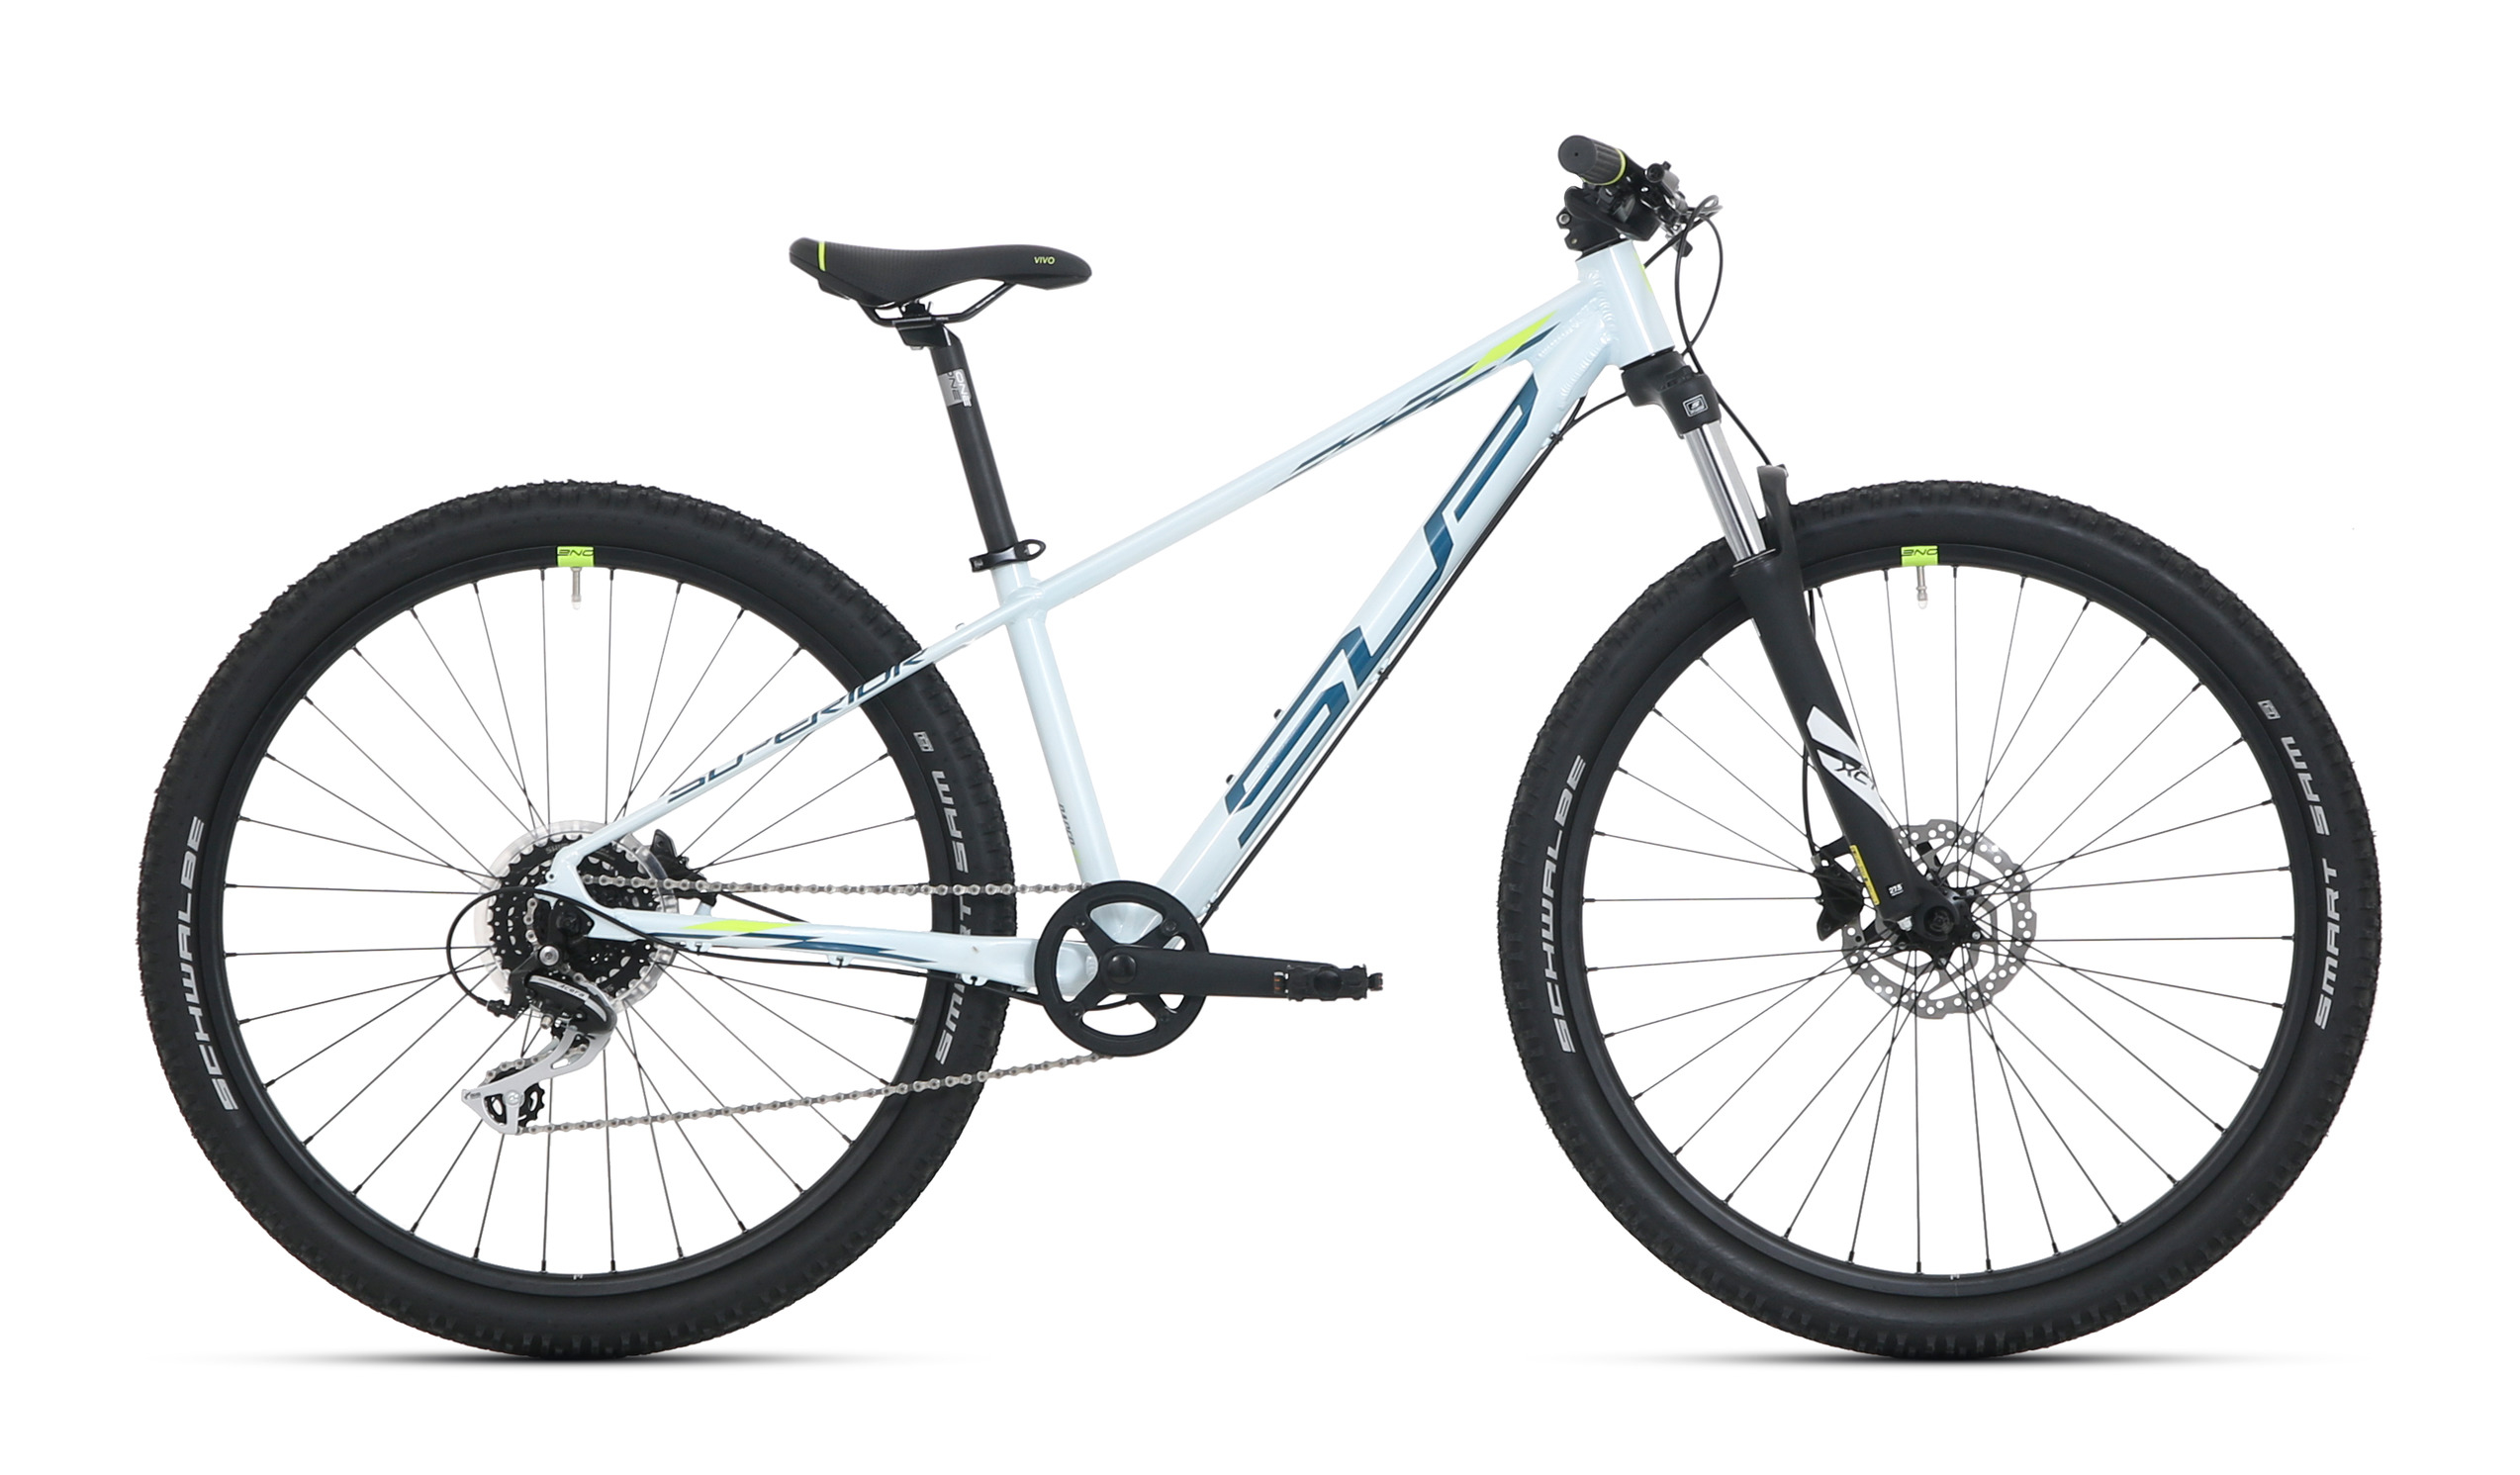 "Superior kolo Racer XC 27 DB, Gloss White/Petrol Blue/Neon Yellow vel. 13.0""(XS) - 2021"